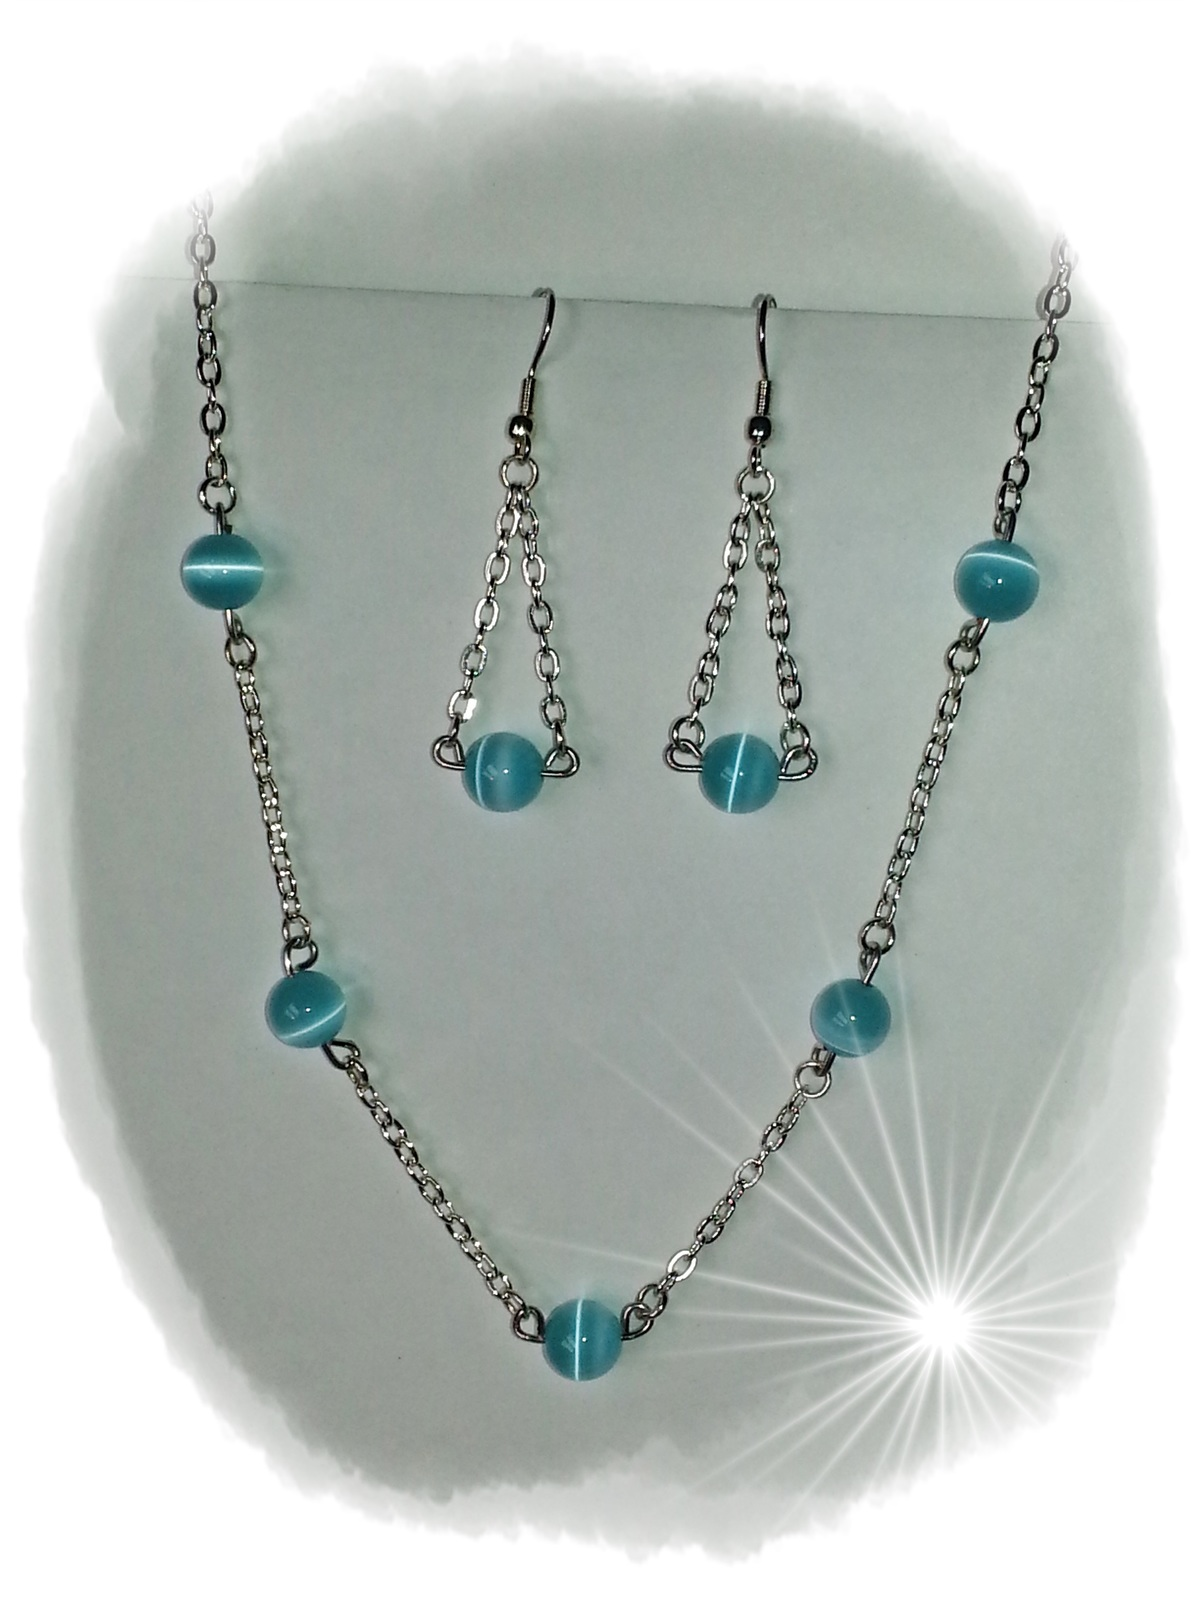 Primary image for Necklace Earrings Blue CatEye FiberOptic Silver Pierced NickleFree Fashion Set